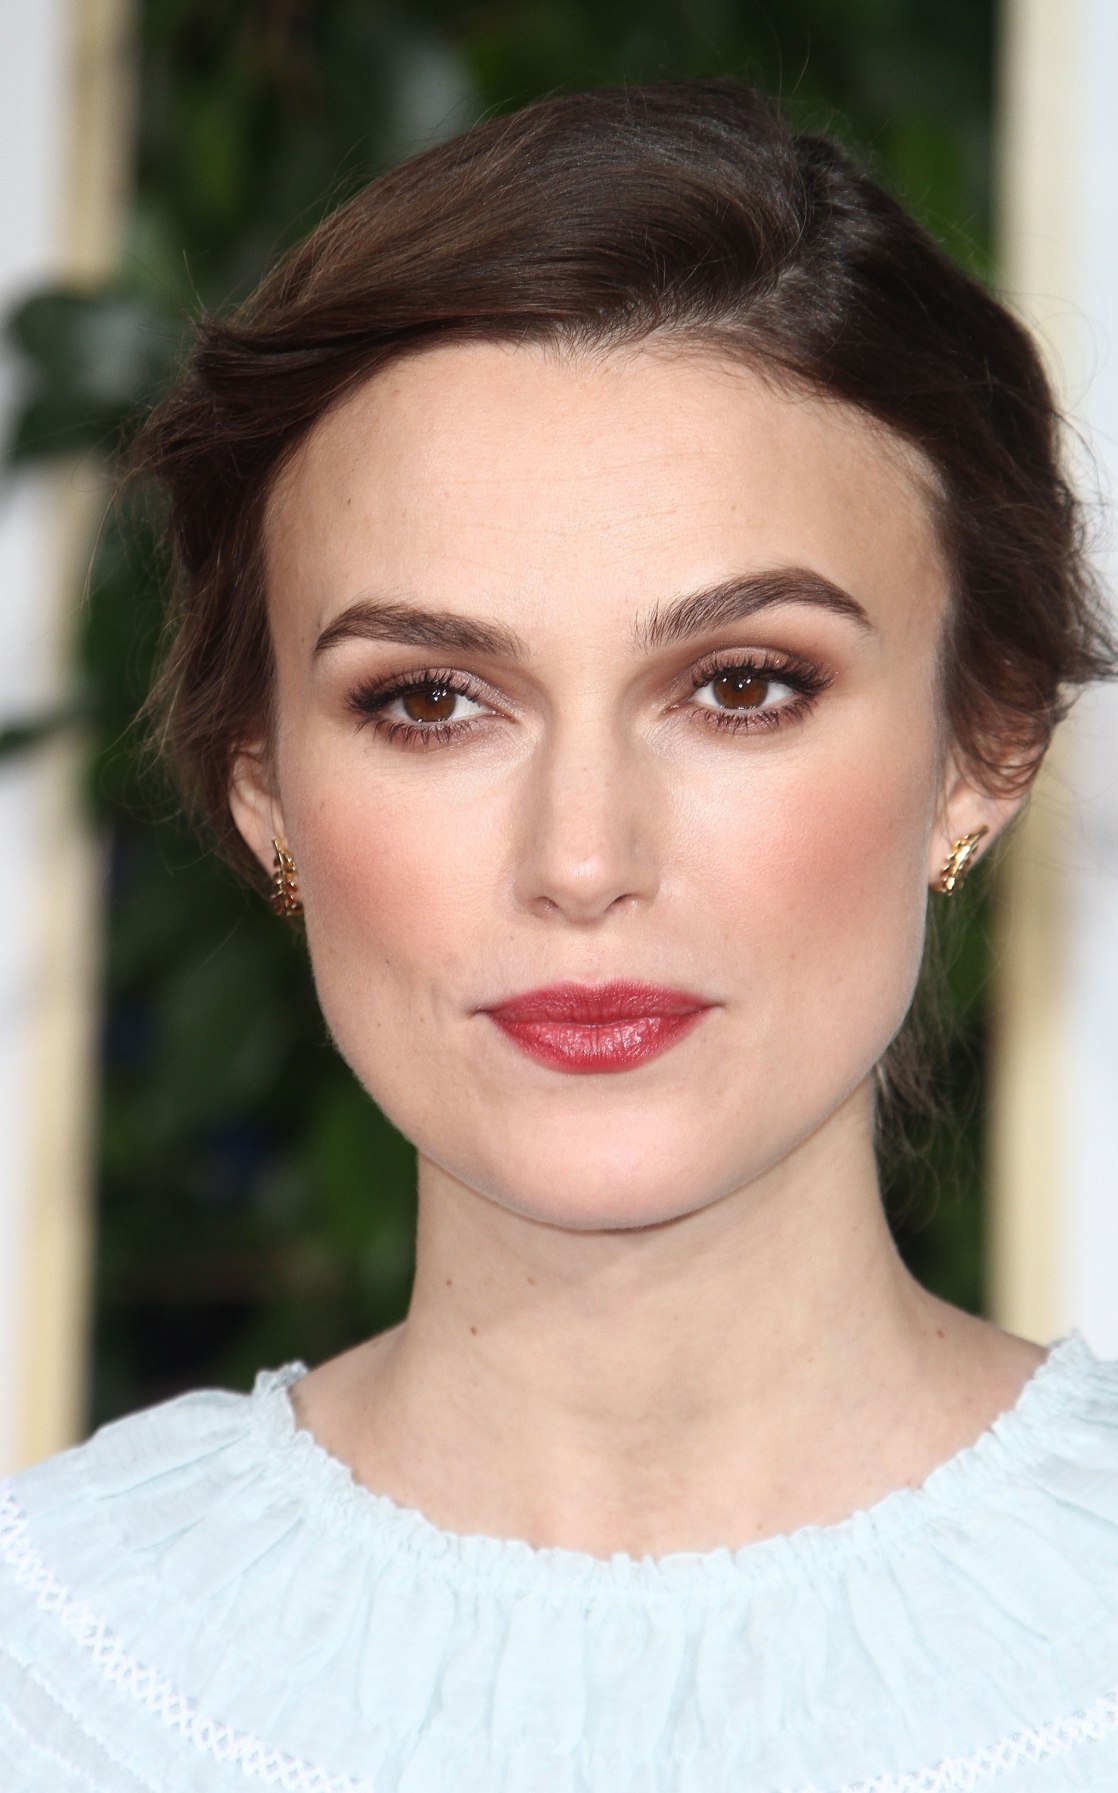 Keira Knightley #125046 Wallpapers High Quality | Download ... Keira Knightley